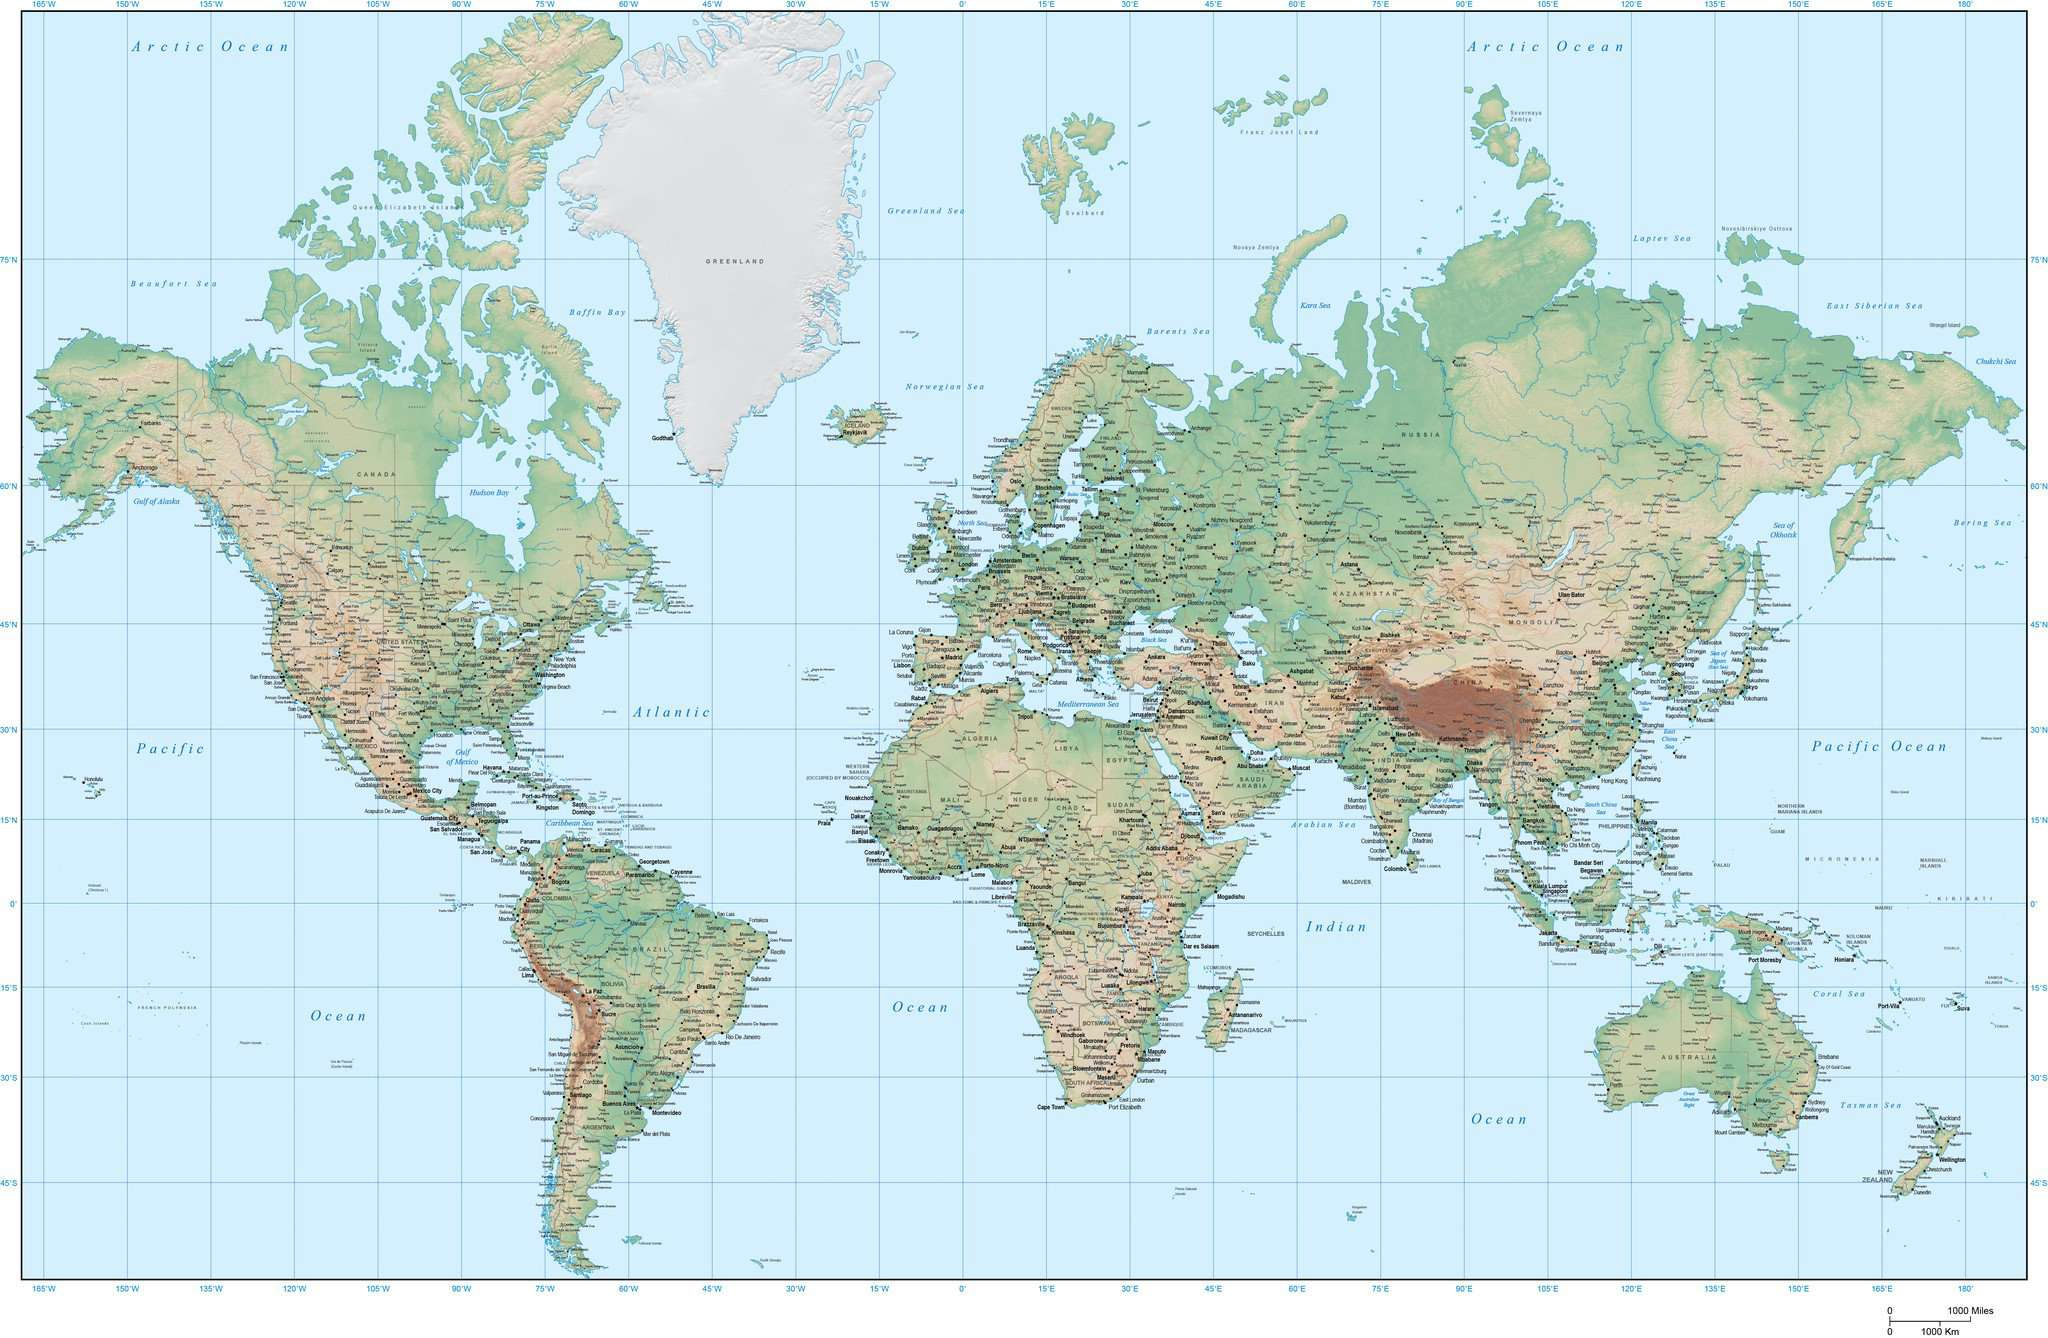 Digital World Terrain Map in Adobe Illustrator with Photoshop